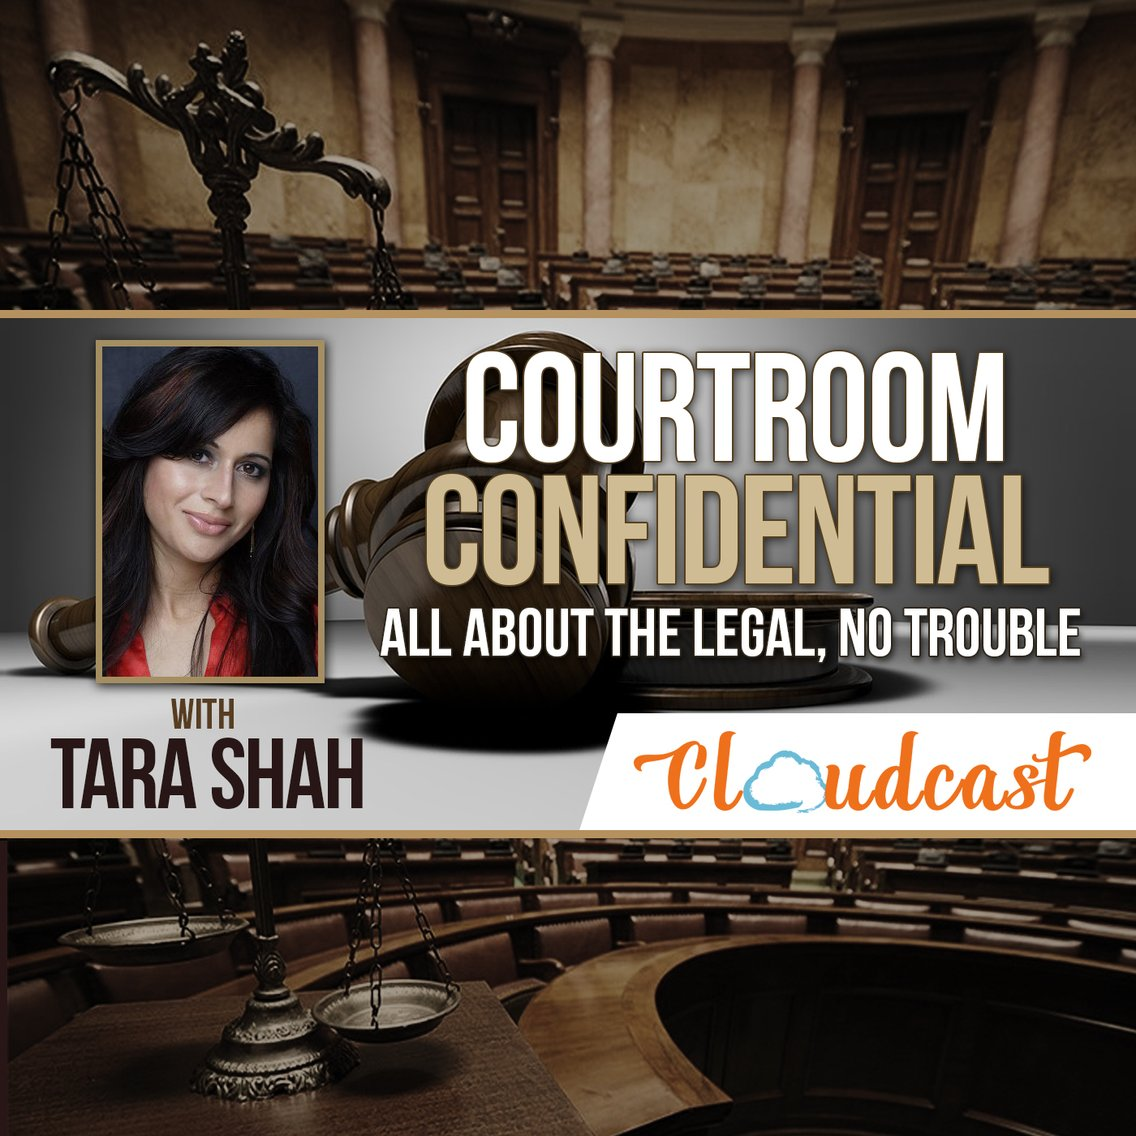 Courtroom Confidential - Cover Image